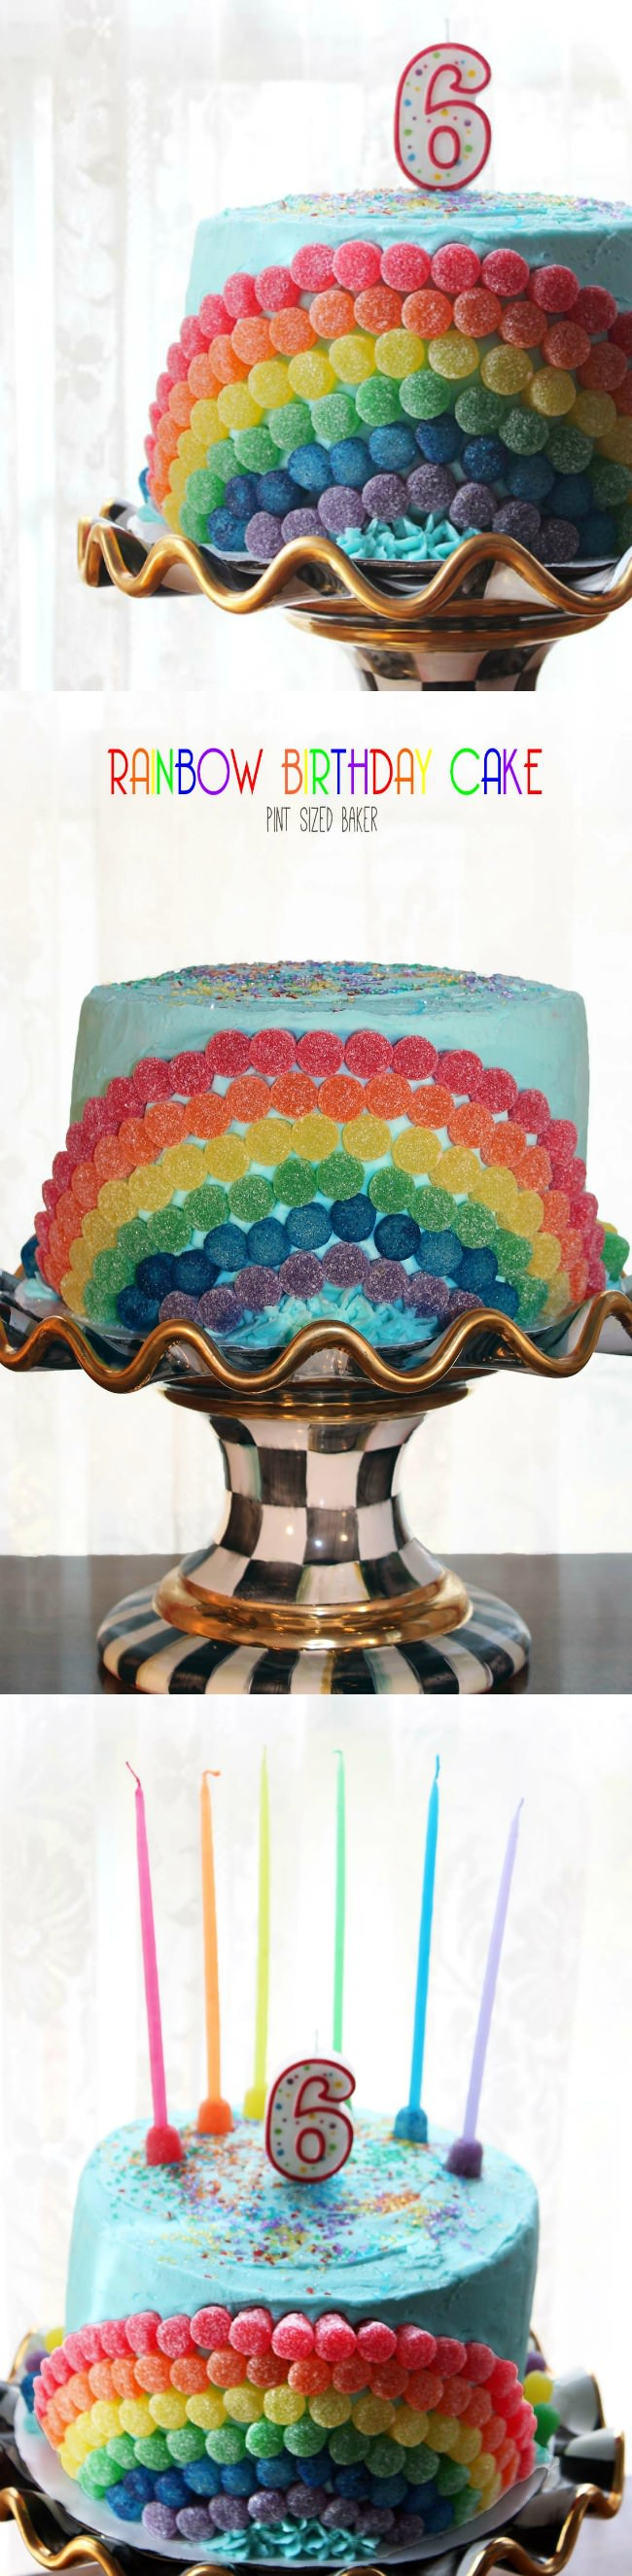 Creating a Rainbow Birthday Cake is fun to make, but it's even more exciting seeing the look on your kids face when you cut into it!